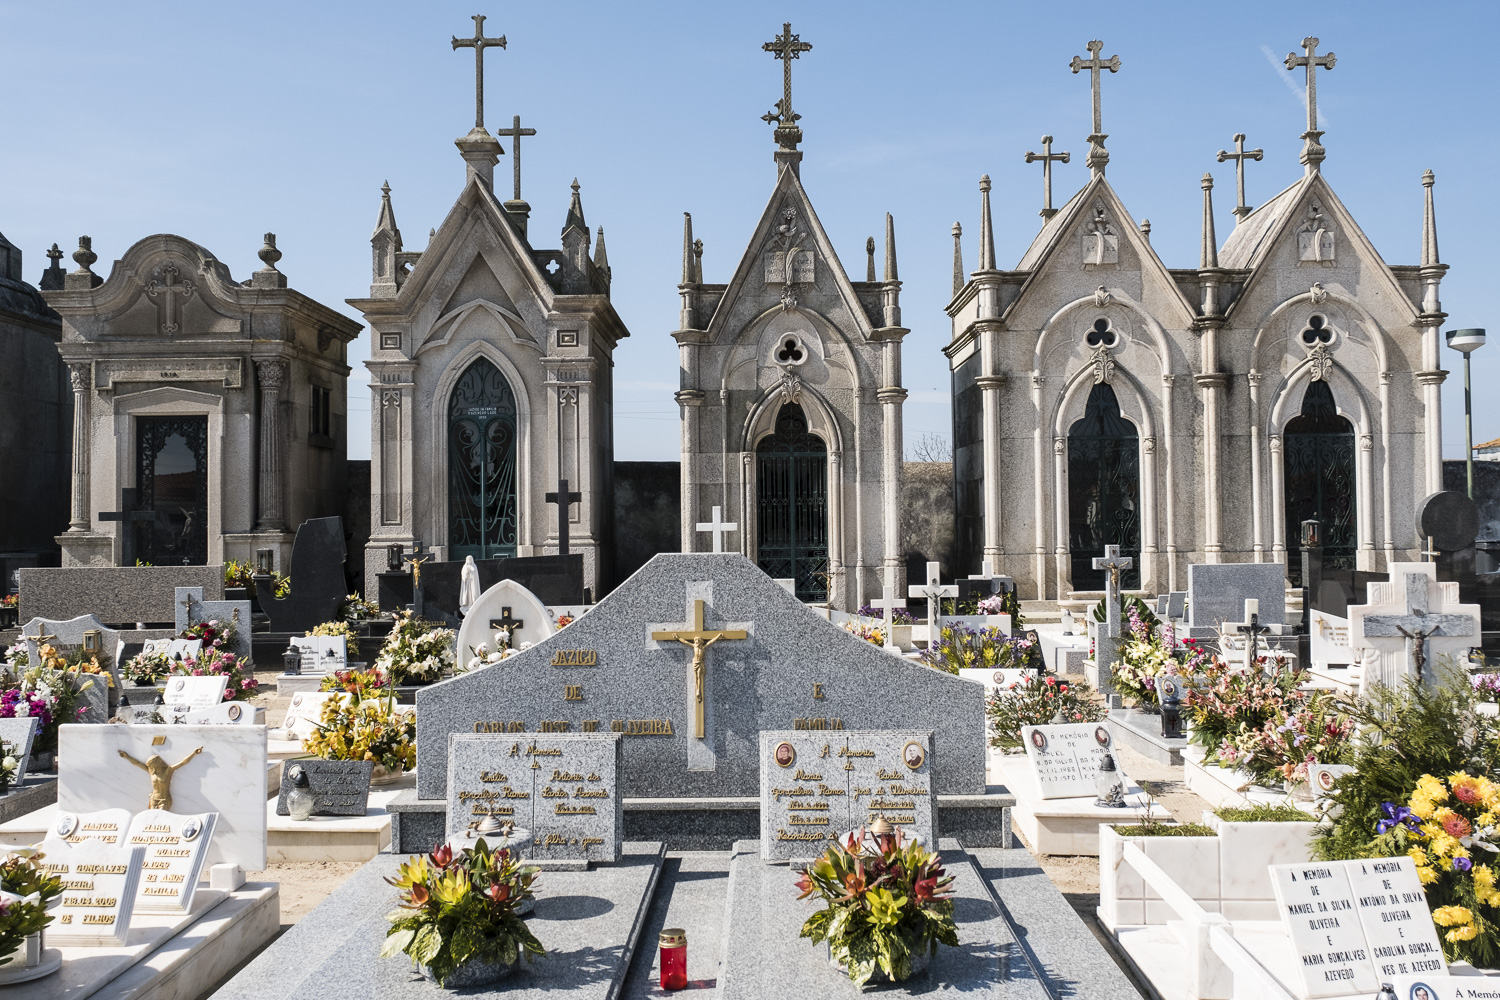 Seaside cemetery, all graves decorated for Easter